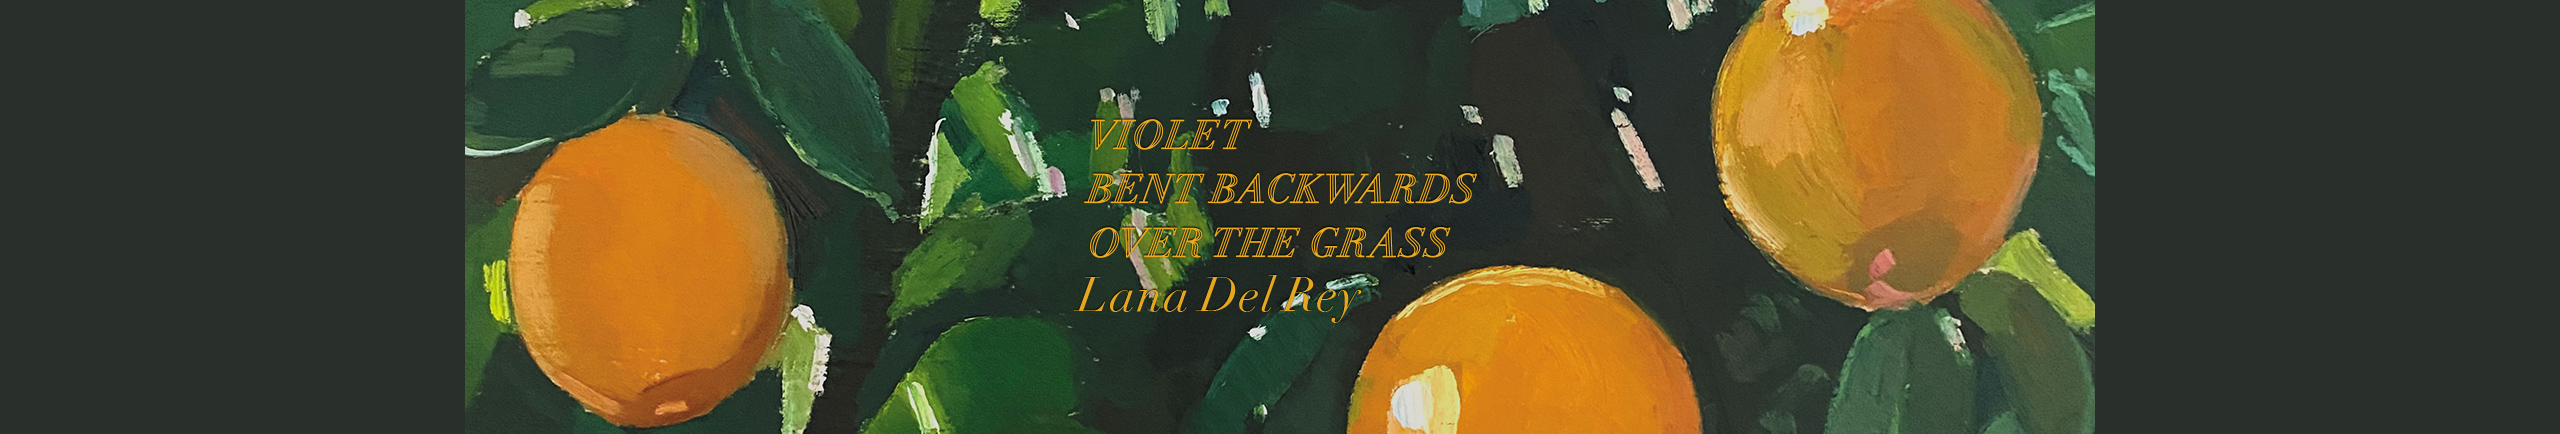 Violet Bent Backwards Over the Grass